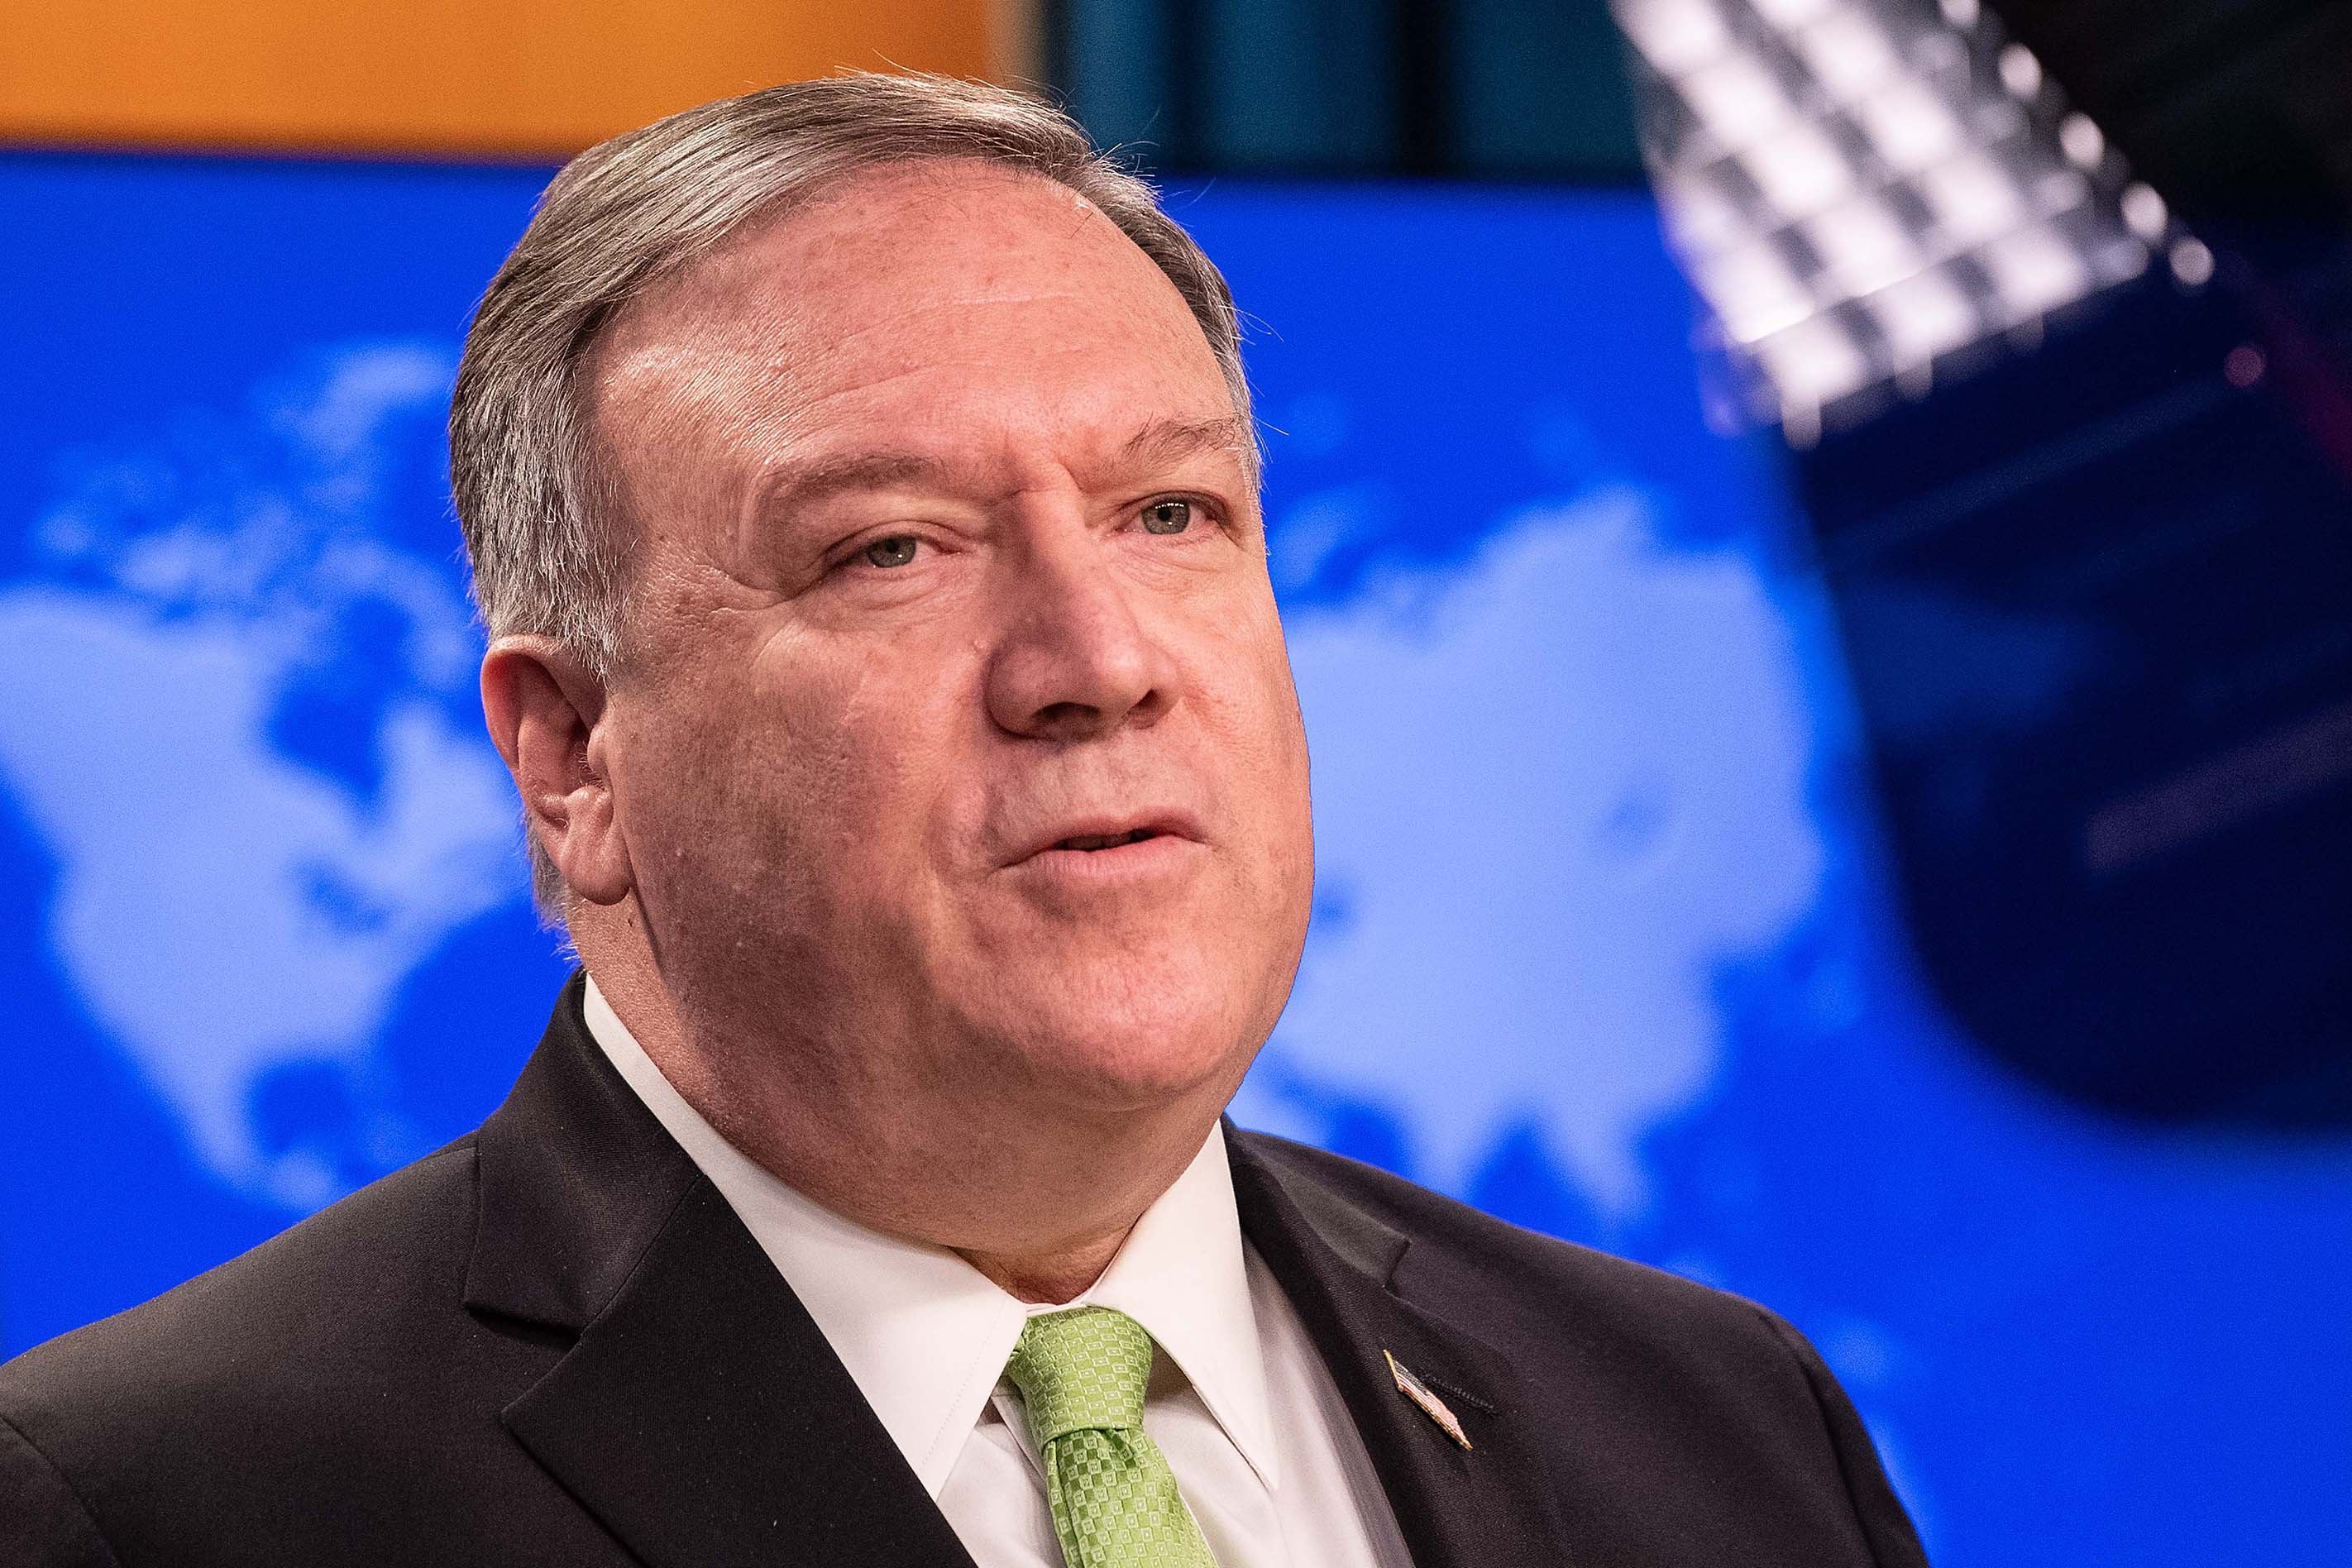 US Secretary of State Mike Pompeo speaks to the press at the State Department in Washington, DC, on May 20.